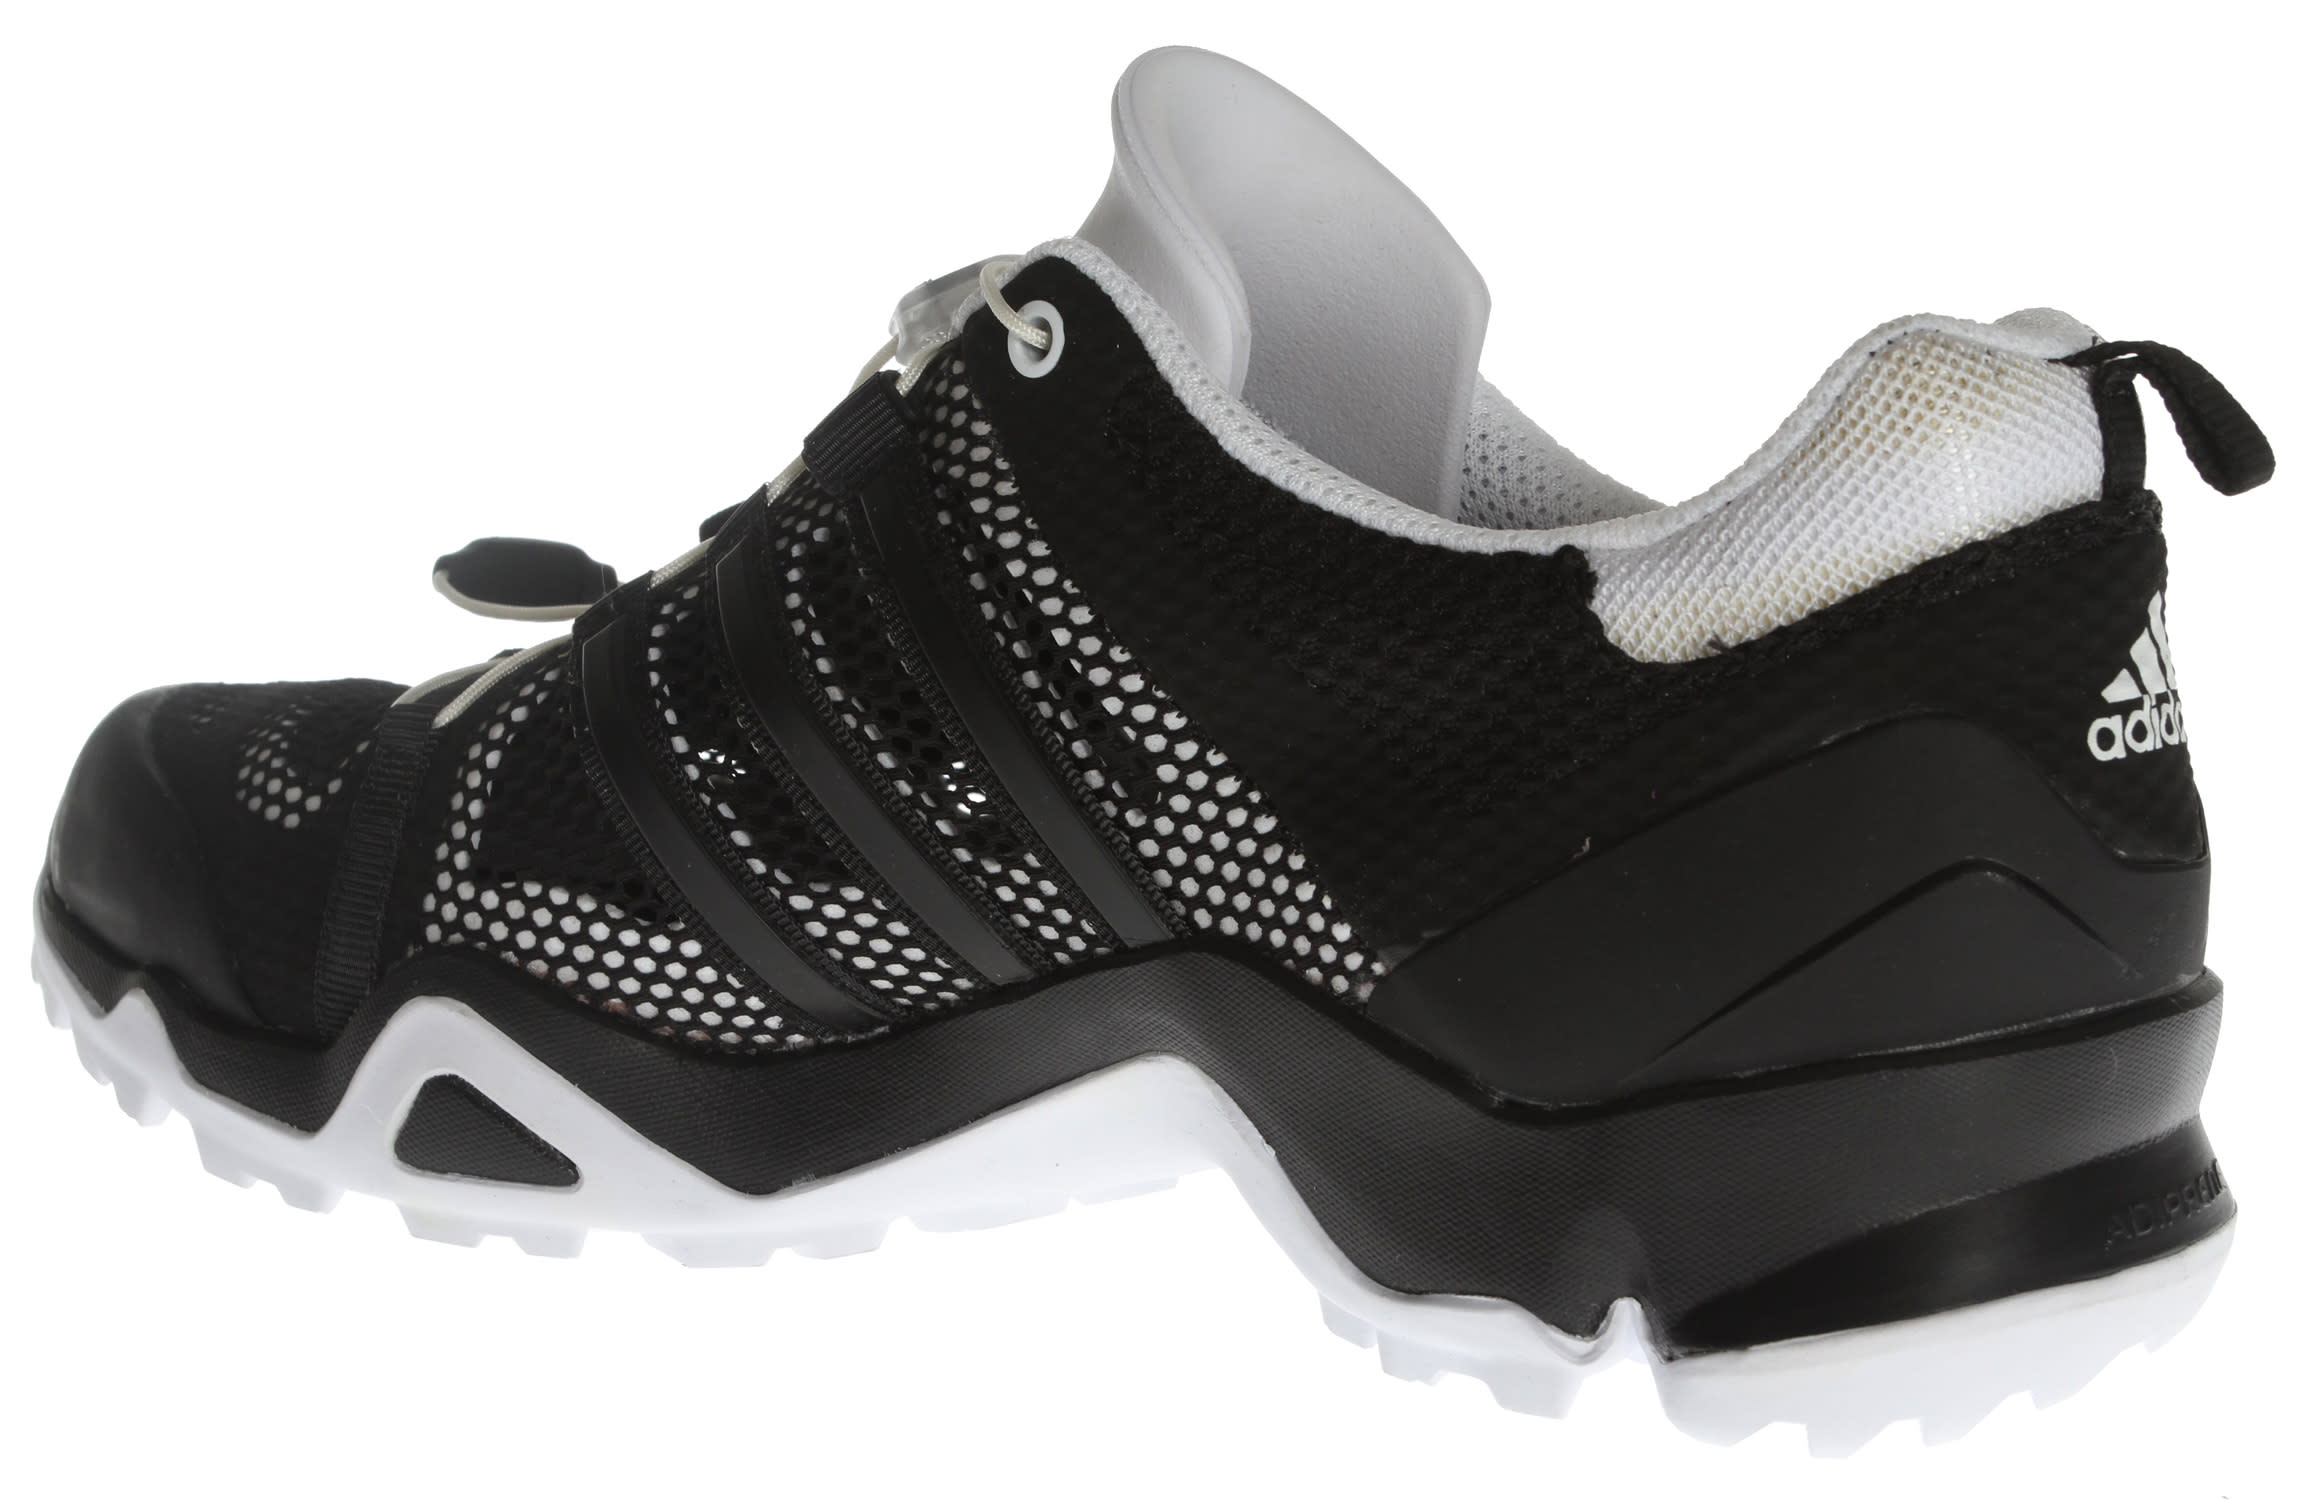 separation shoes cf3f3 1eb46 Adidas Terrex Swift R Breeze Hiking Shoes - thumbnail 3